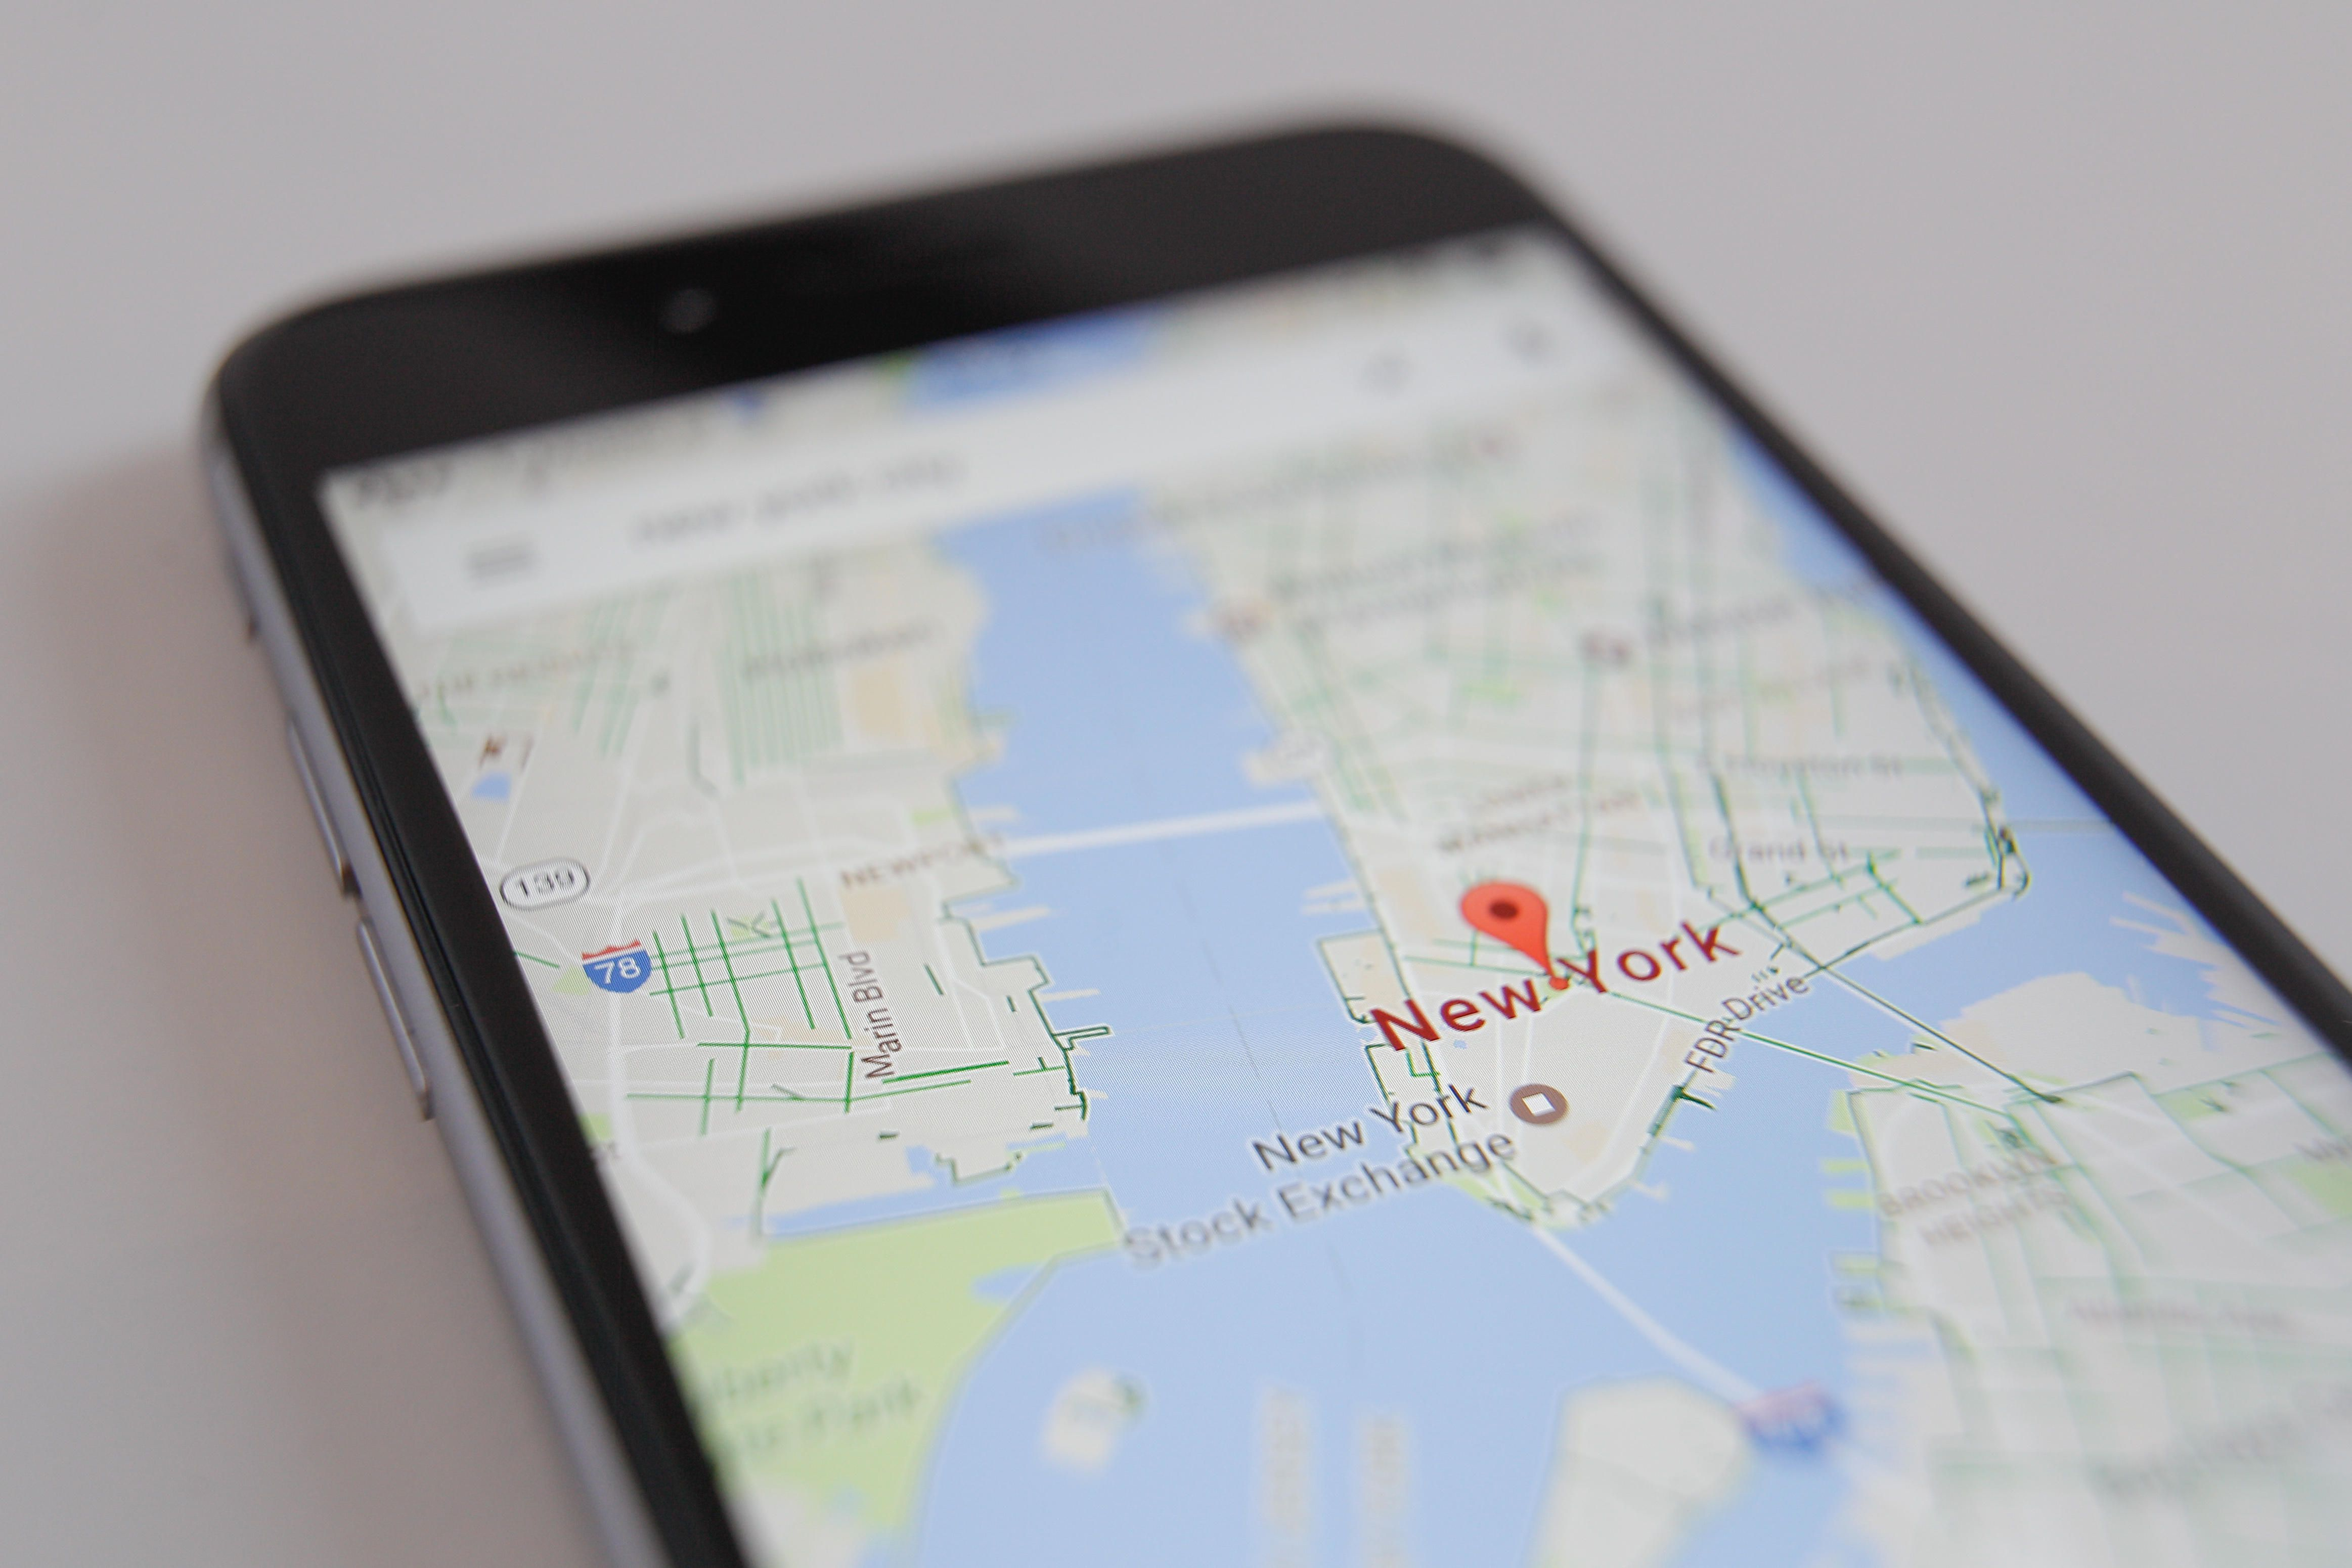 Smartphone apps are tracking and selling your location data faster than most people realize, theWall Street Journal reported. Every time you open an app and authorize it to access your location, you risk having that information leaked or exploited. Although location data is helpful for travel directions and weather reports, there is a downside to …